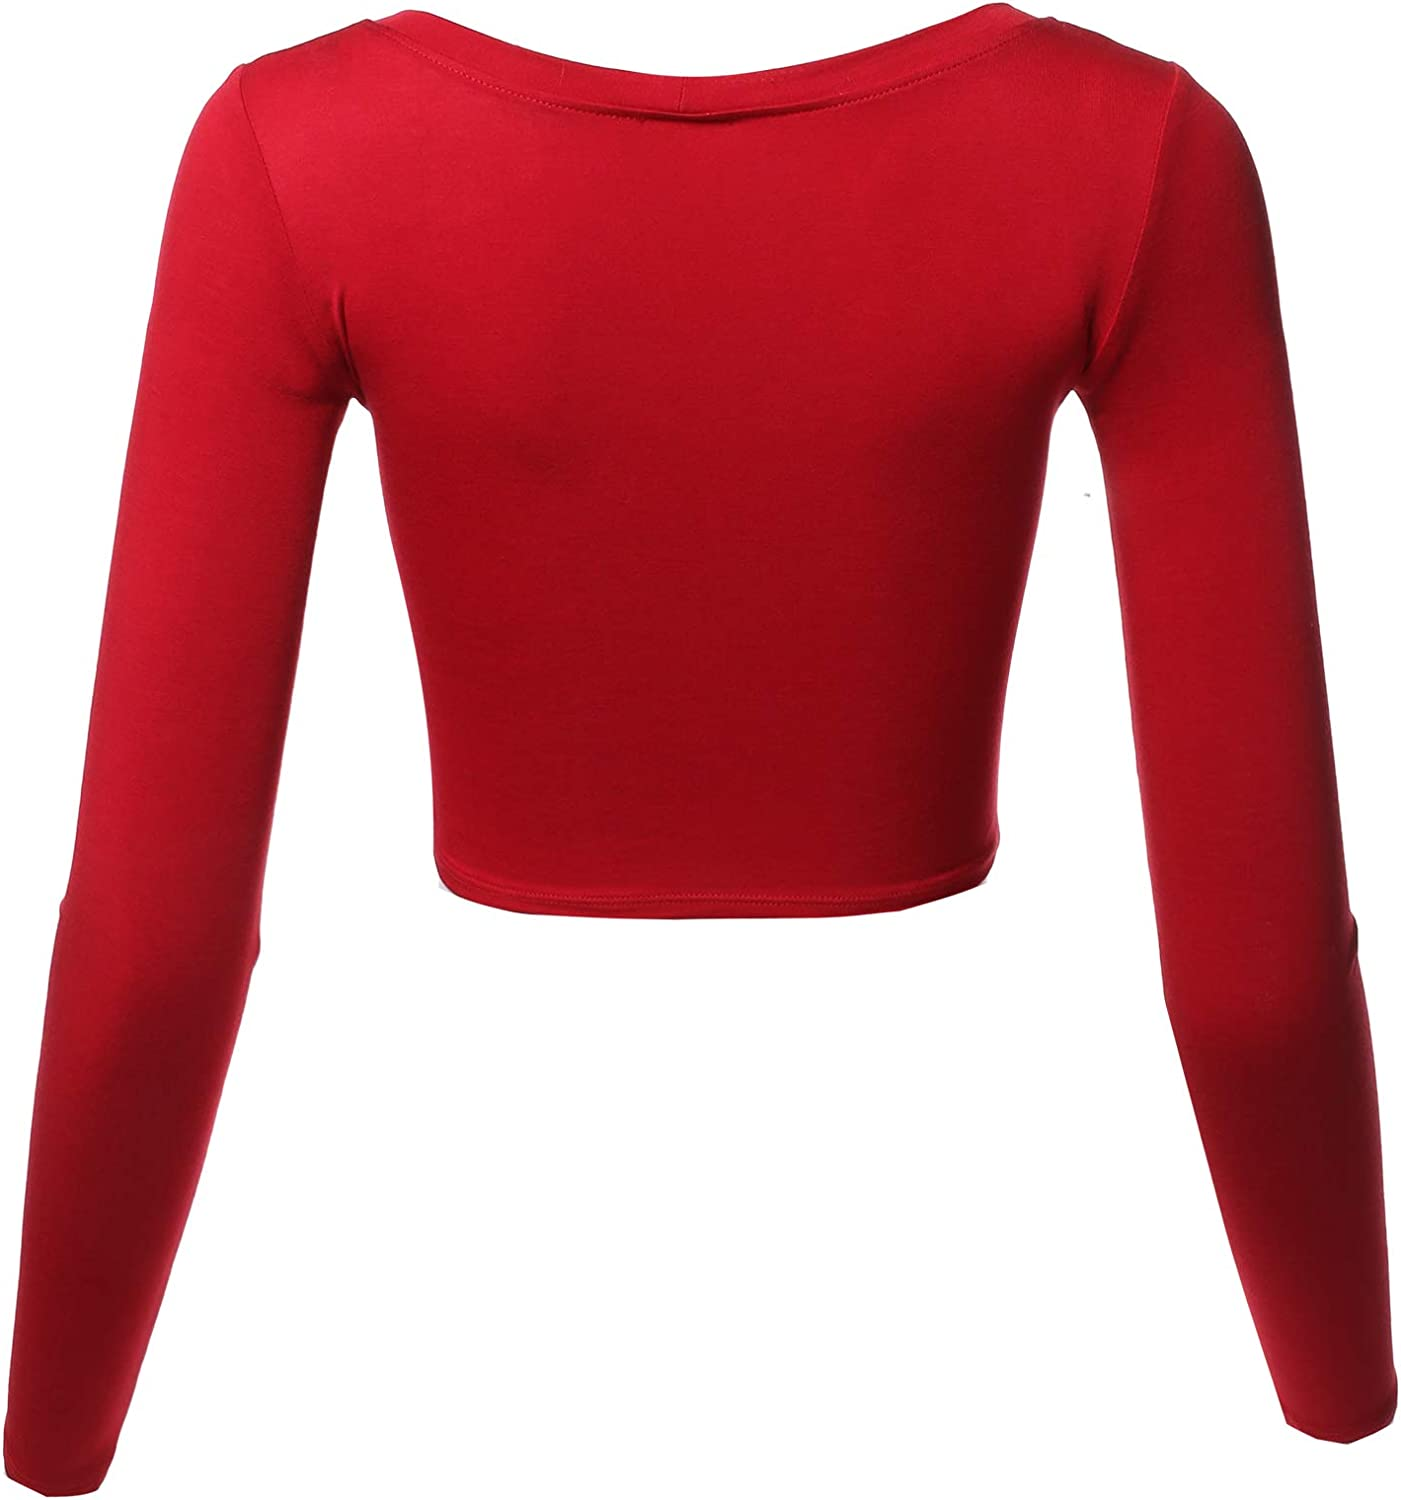 Womens Solid Round Neck Long Sleeve Basic Crop Top